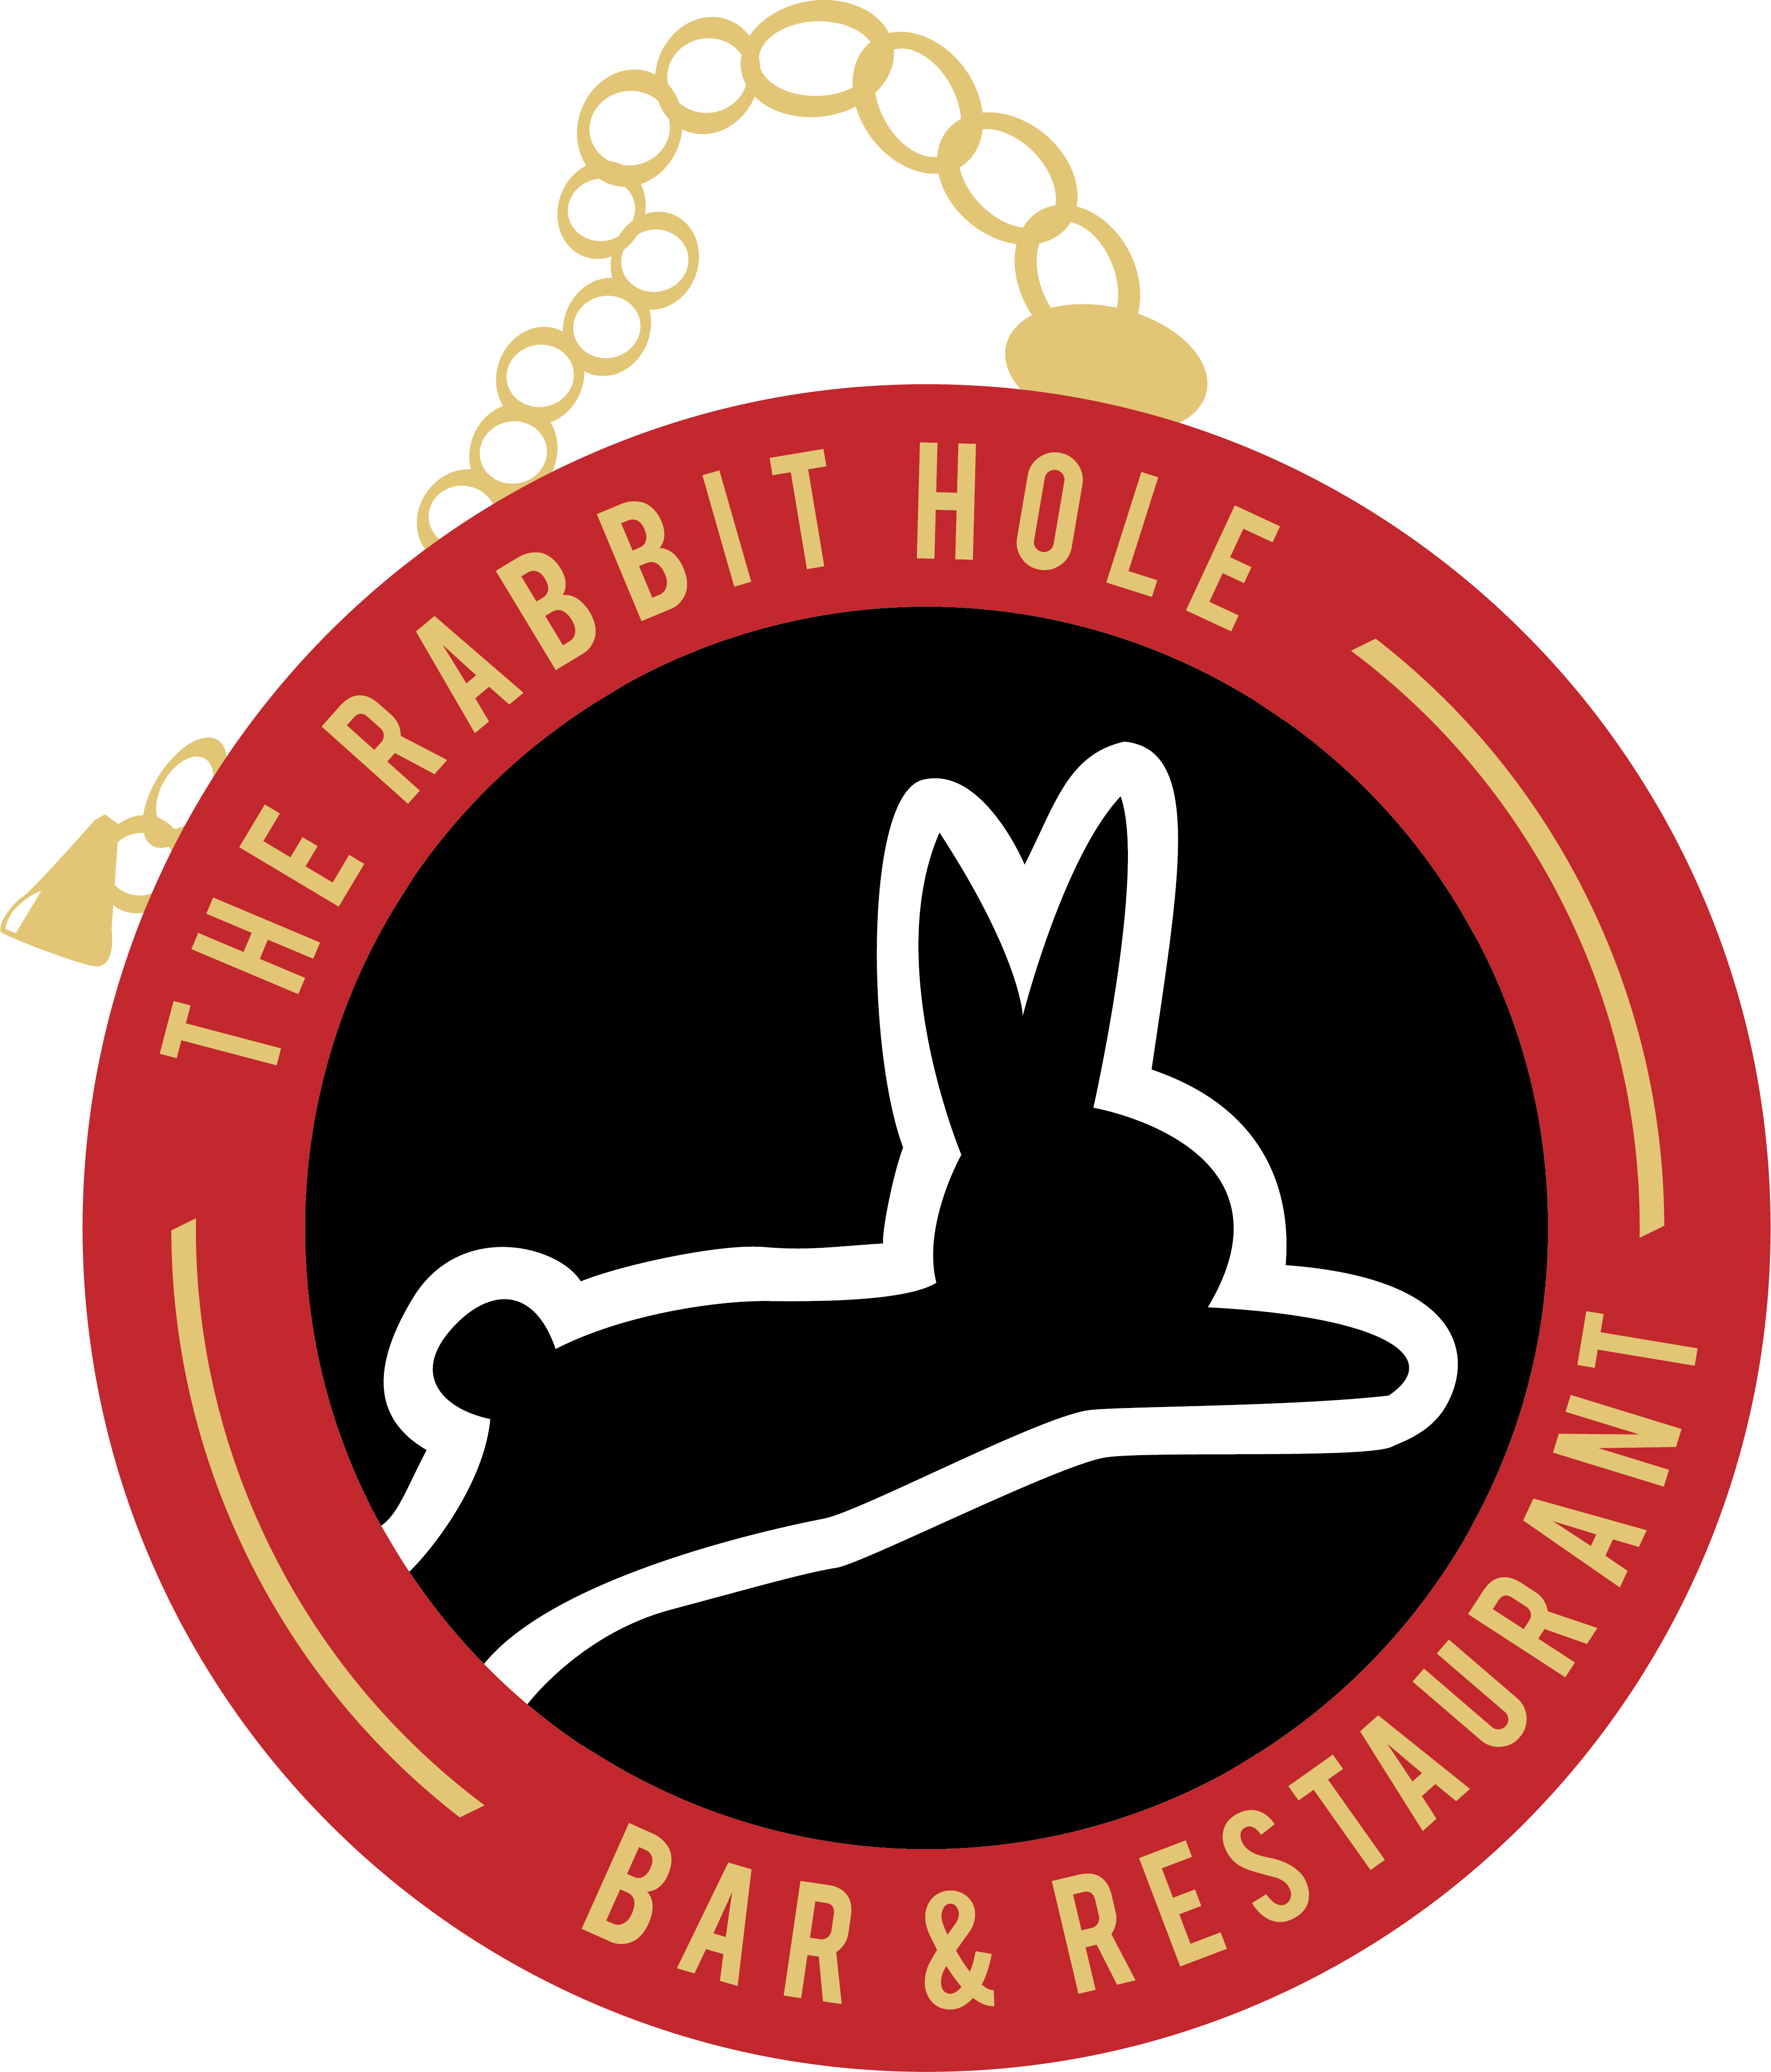 The Rabbit Hole - Logo